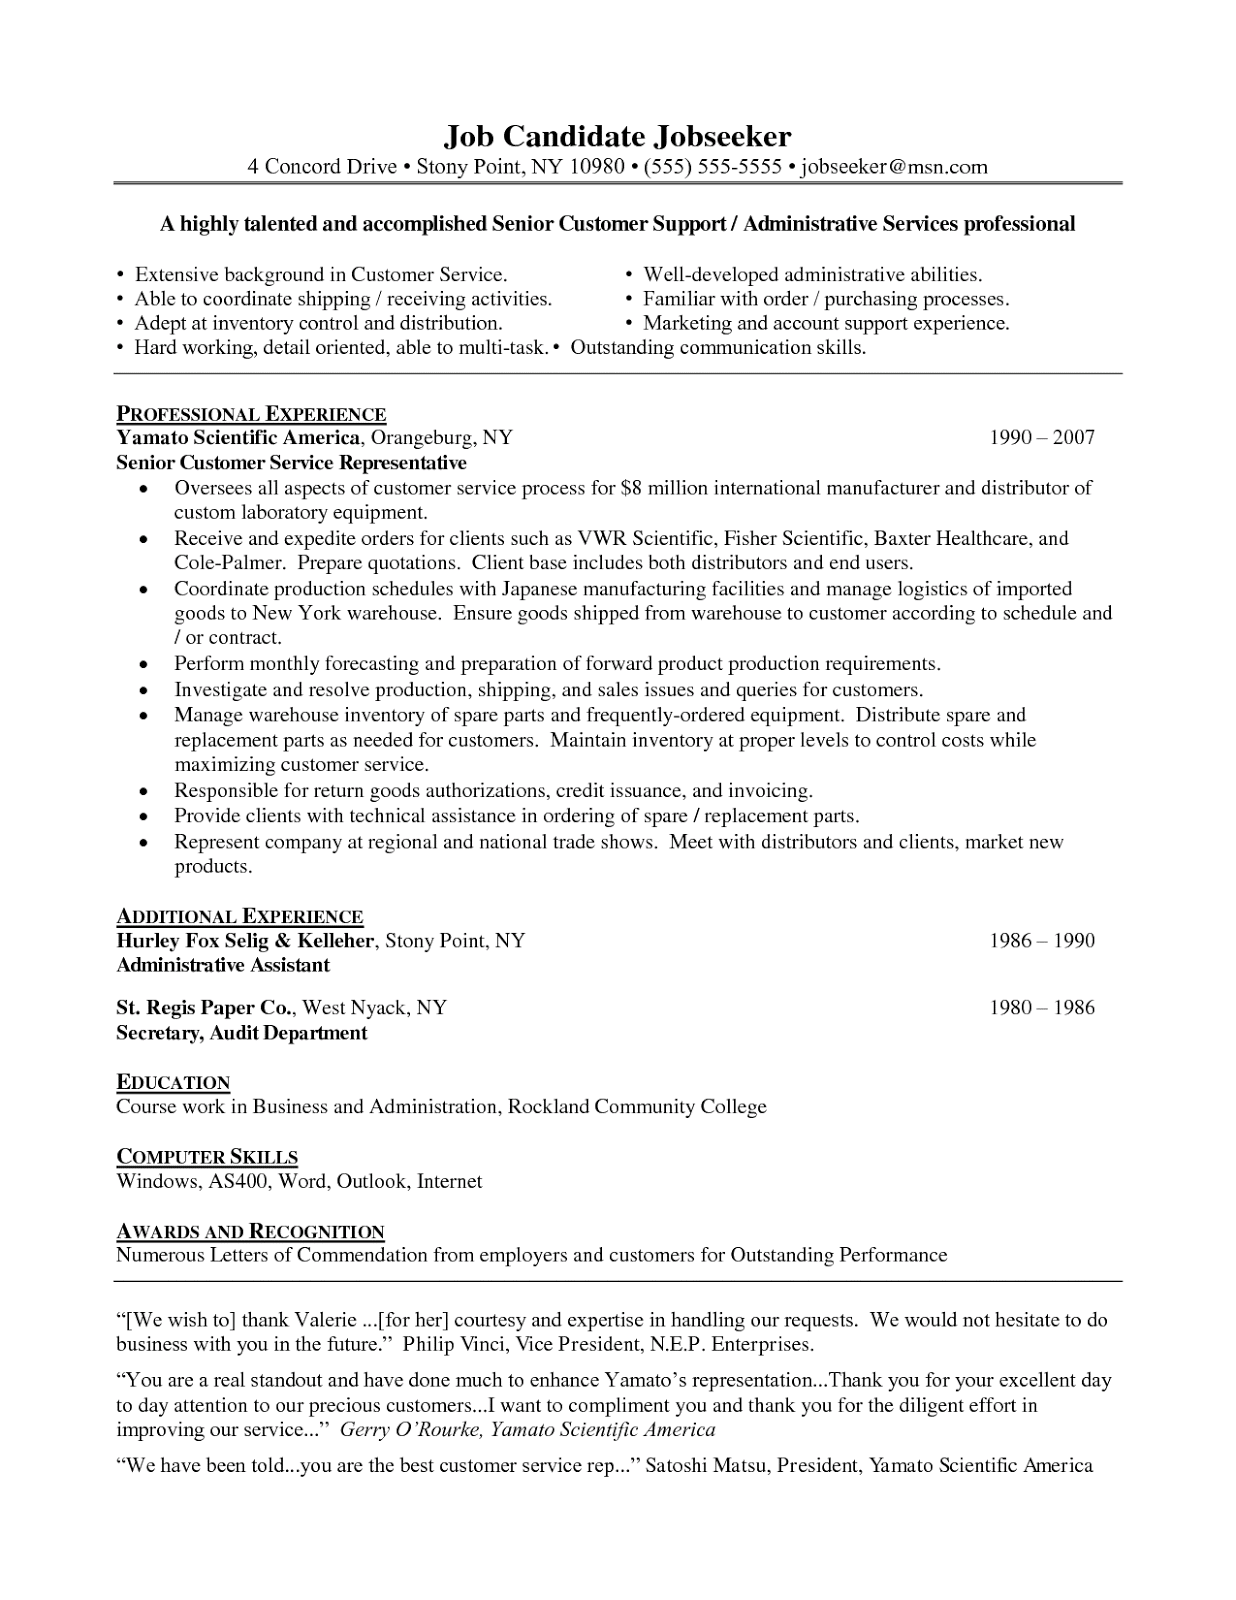 Best Of Class Resume Writing Samples And Resume Writing Advice From  Best Resume Advice